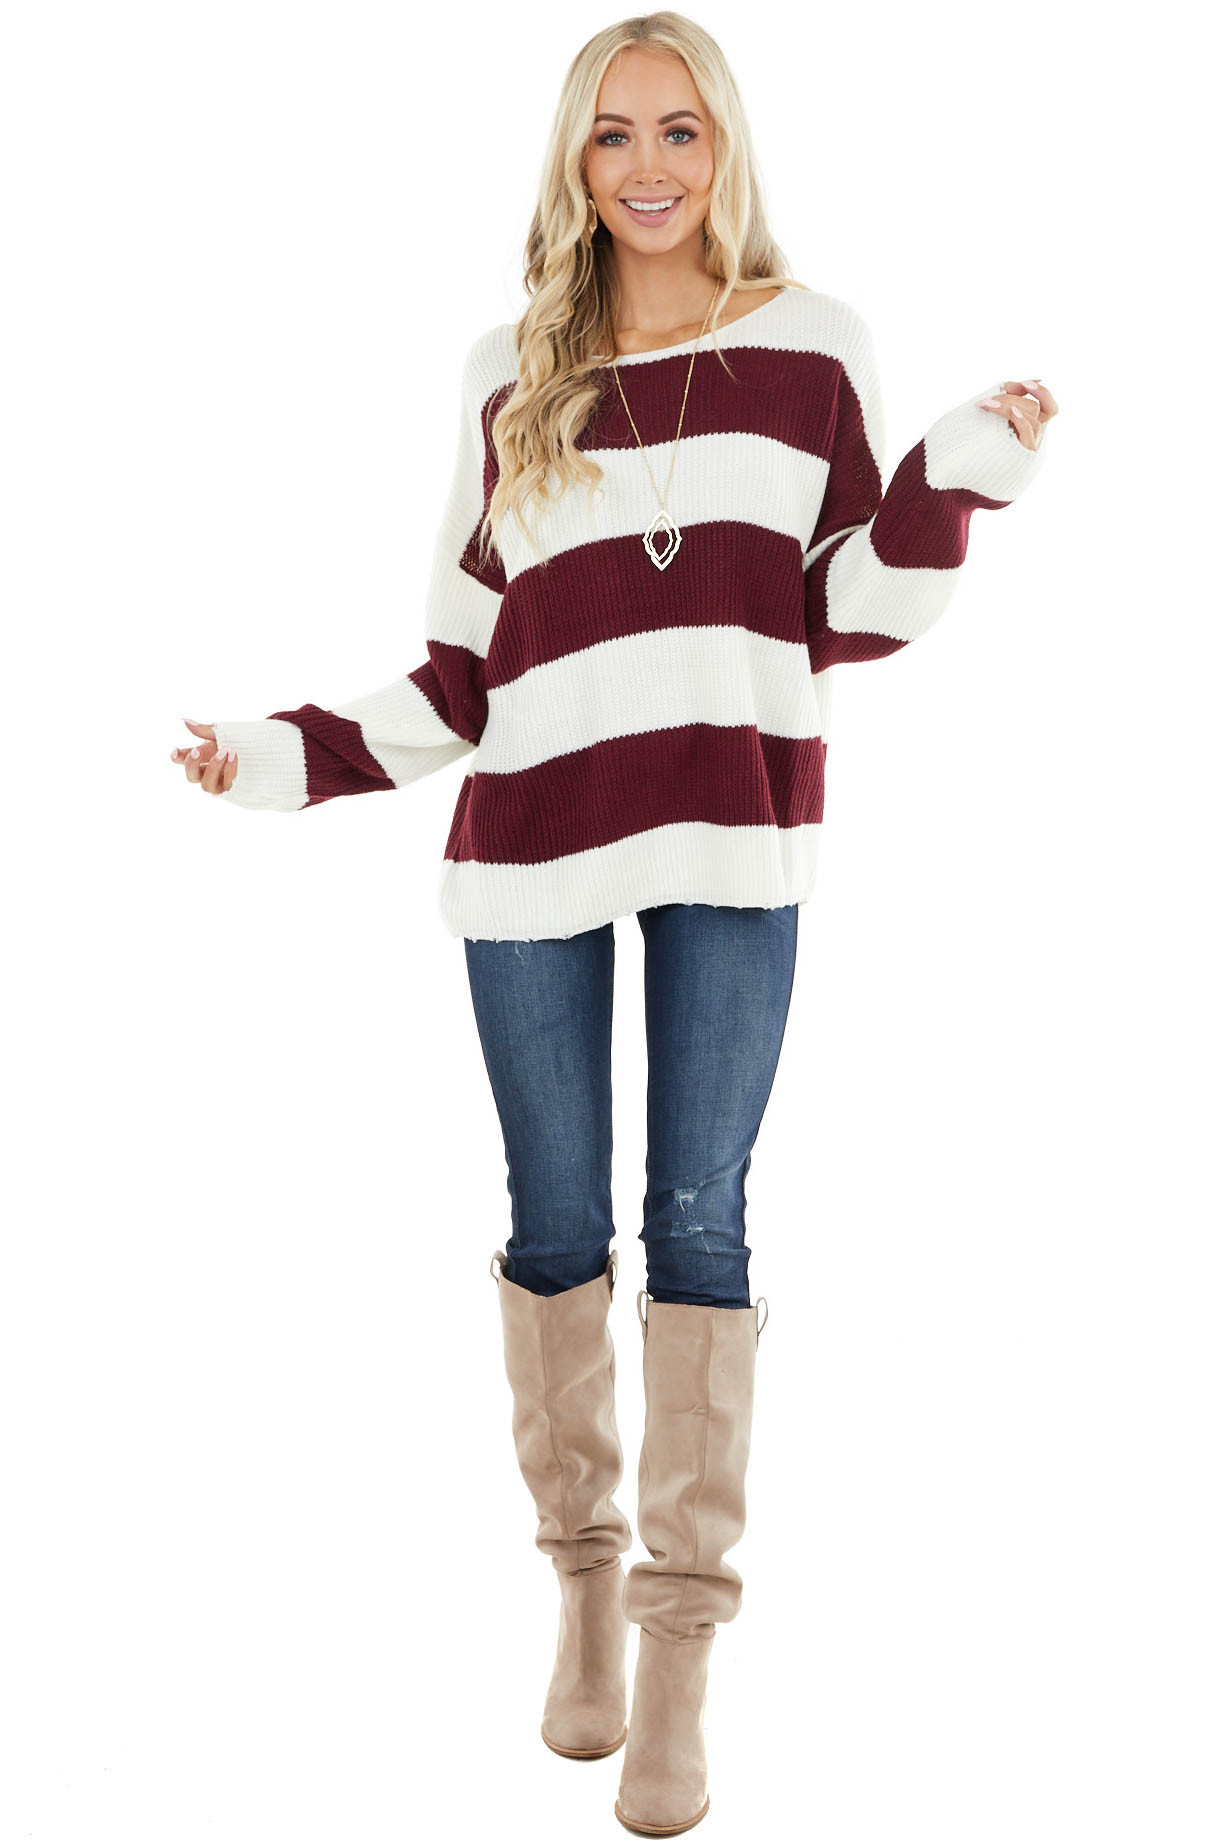 Ivory and Wine Striped Sweater with Distressed Hem Details